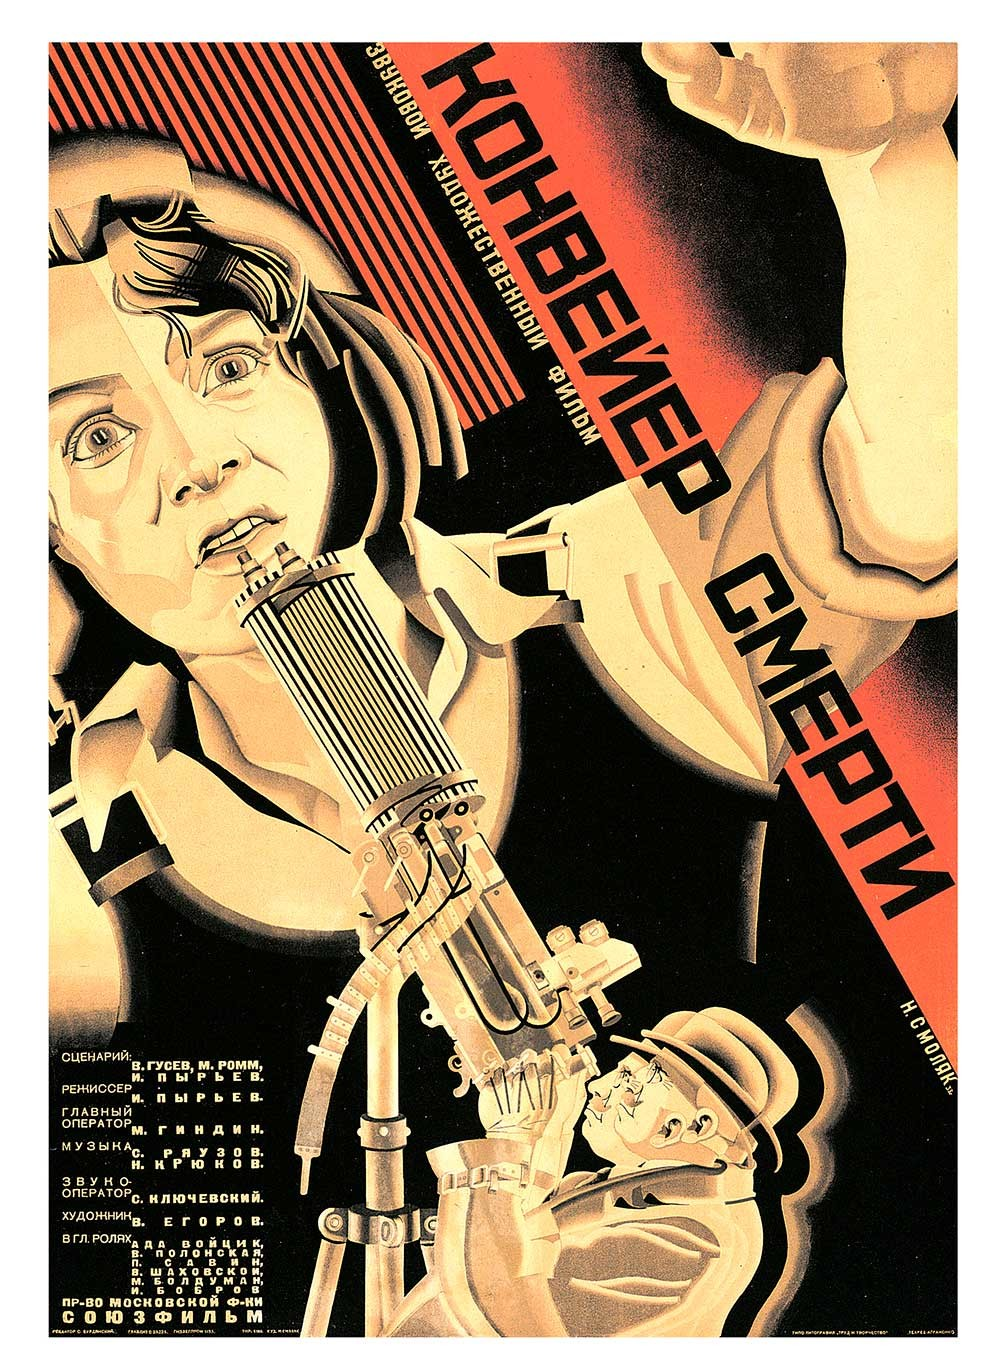 Smolyakovsky, Film poster for Konveier smerti (The Conveyor of Death), 1933